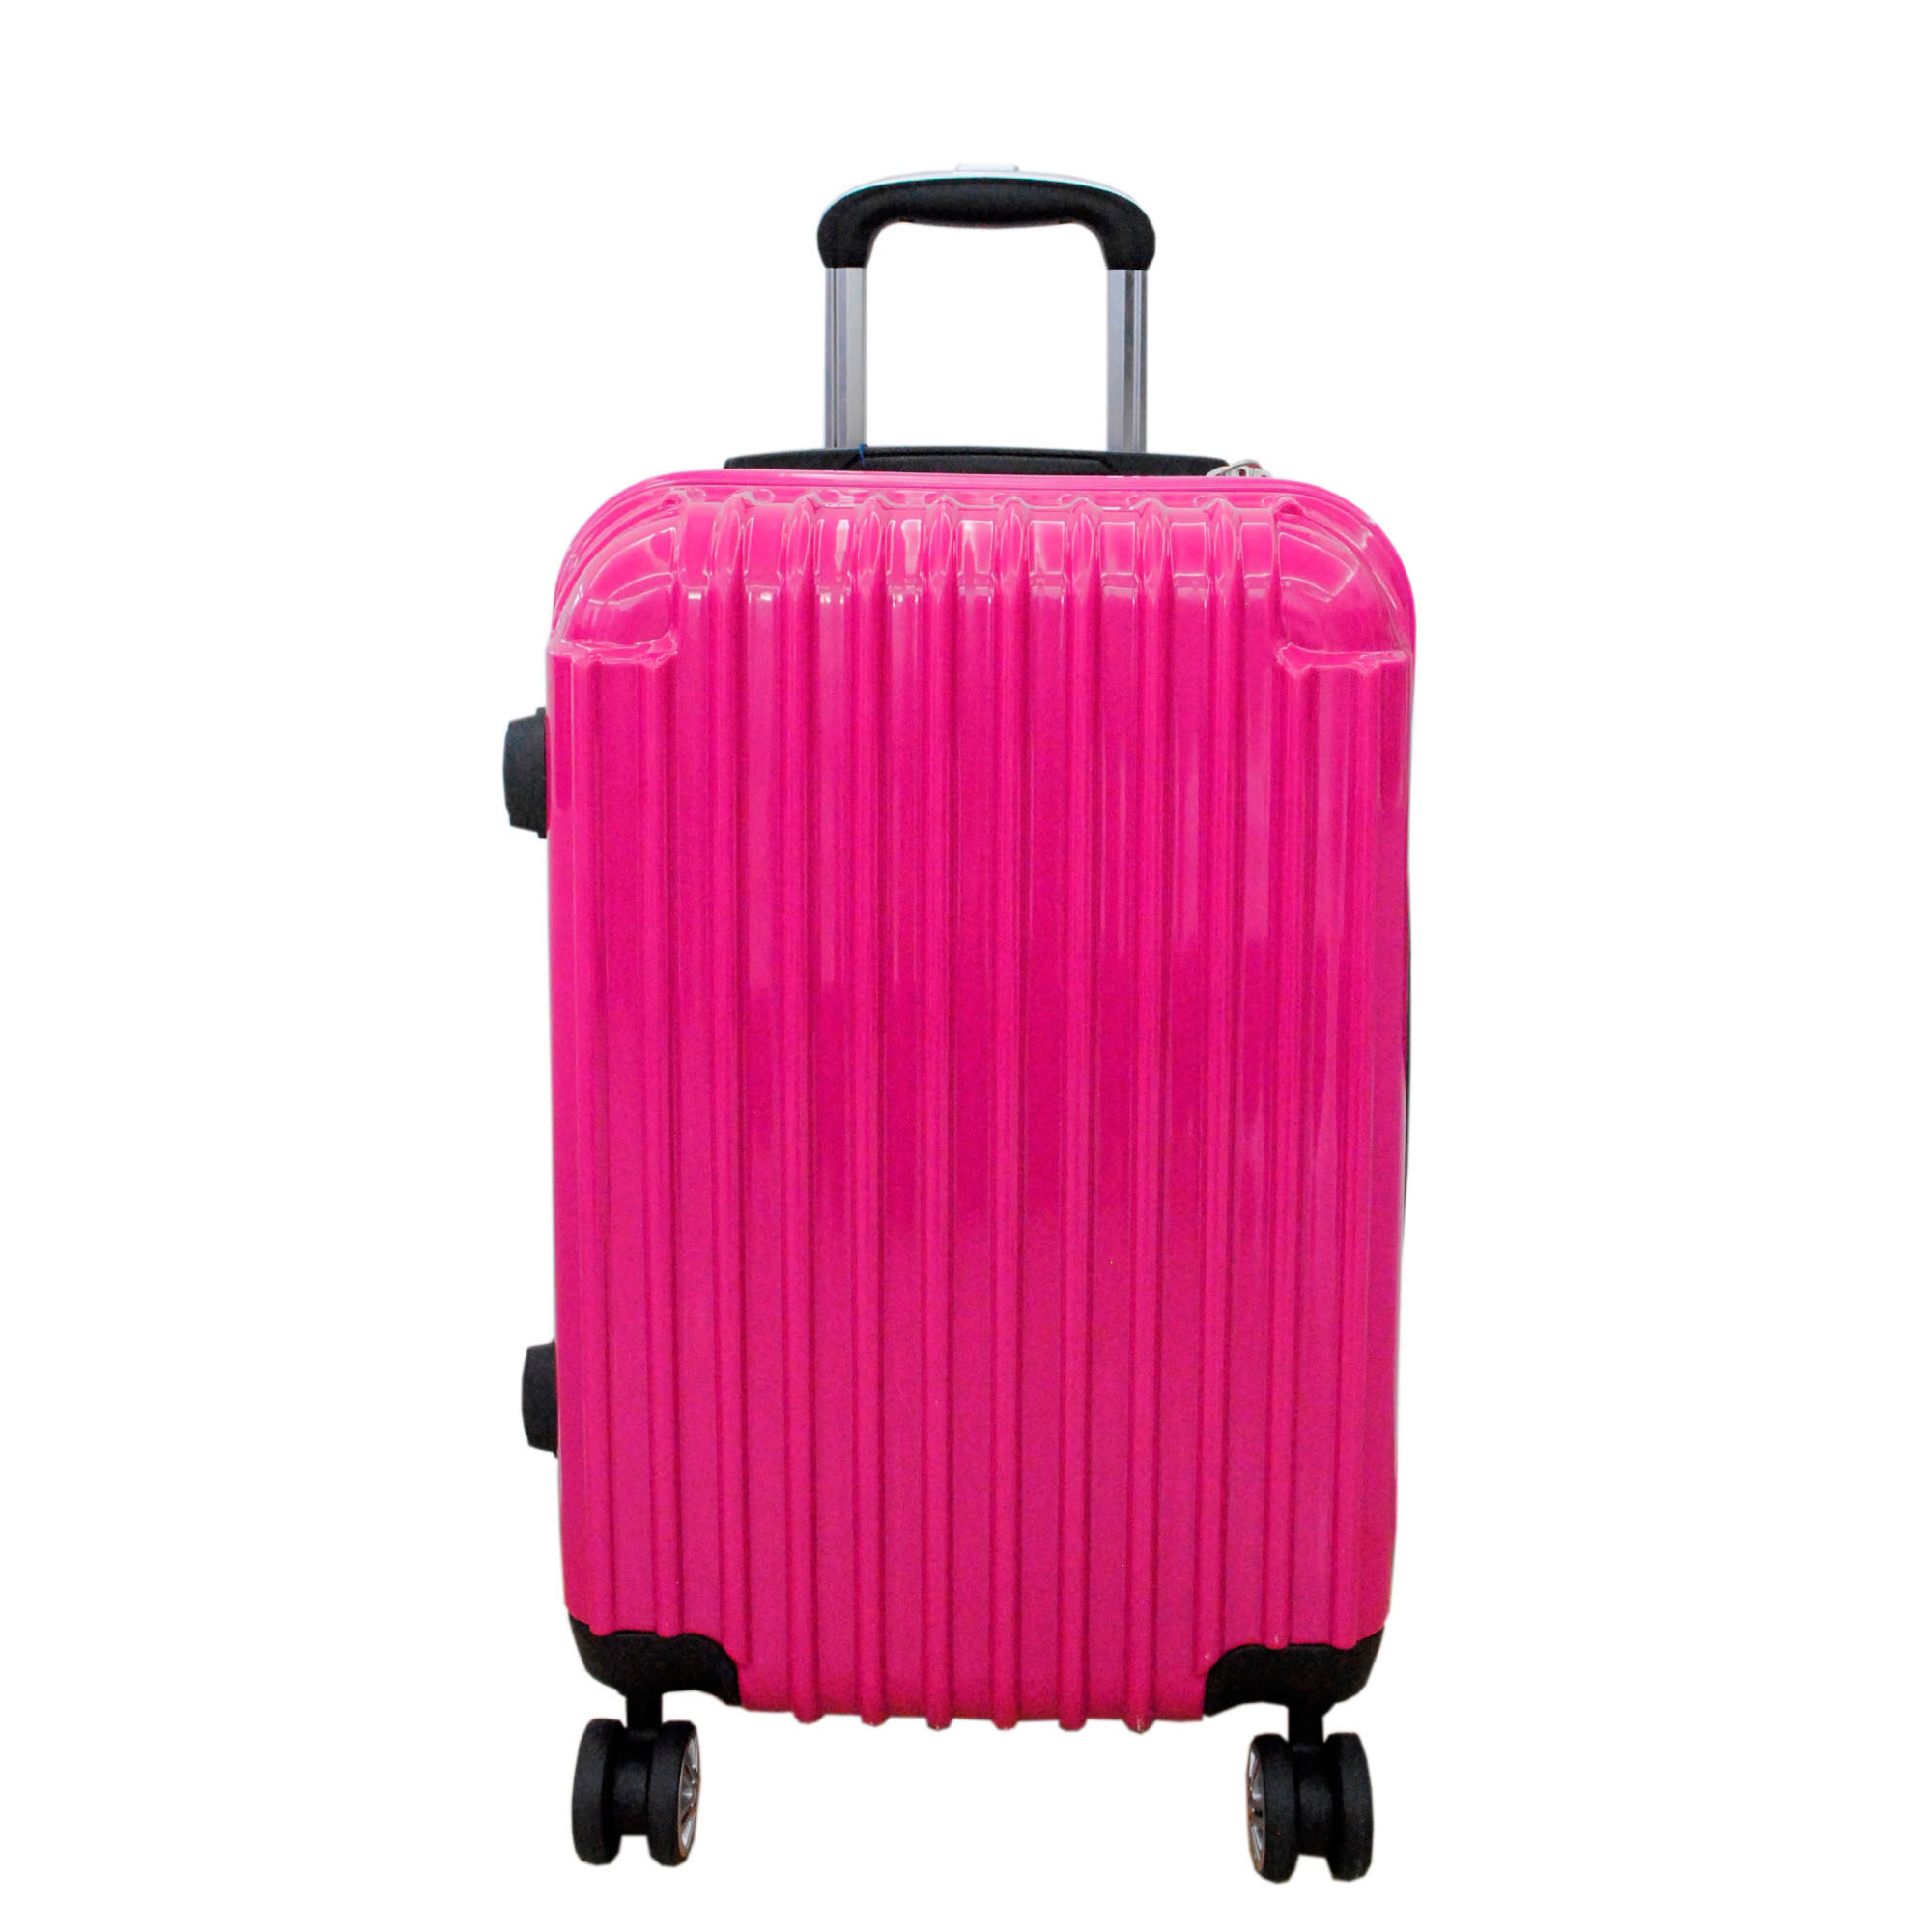 "Barry Smith 20"" 8 Wheeler Expandable Hardcase Luggage (Pink ..."